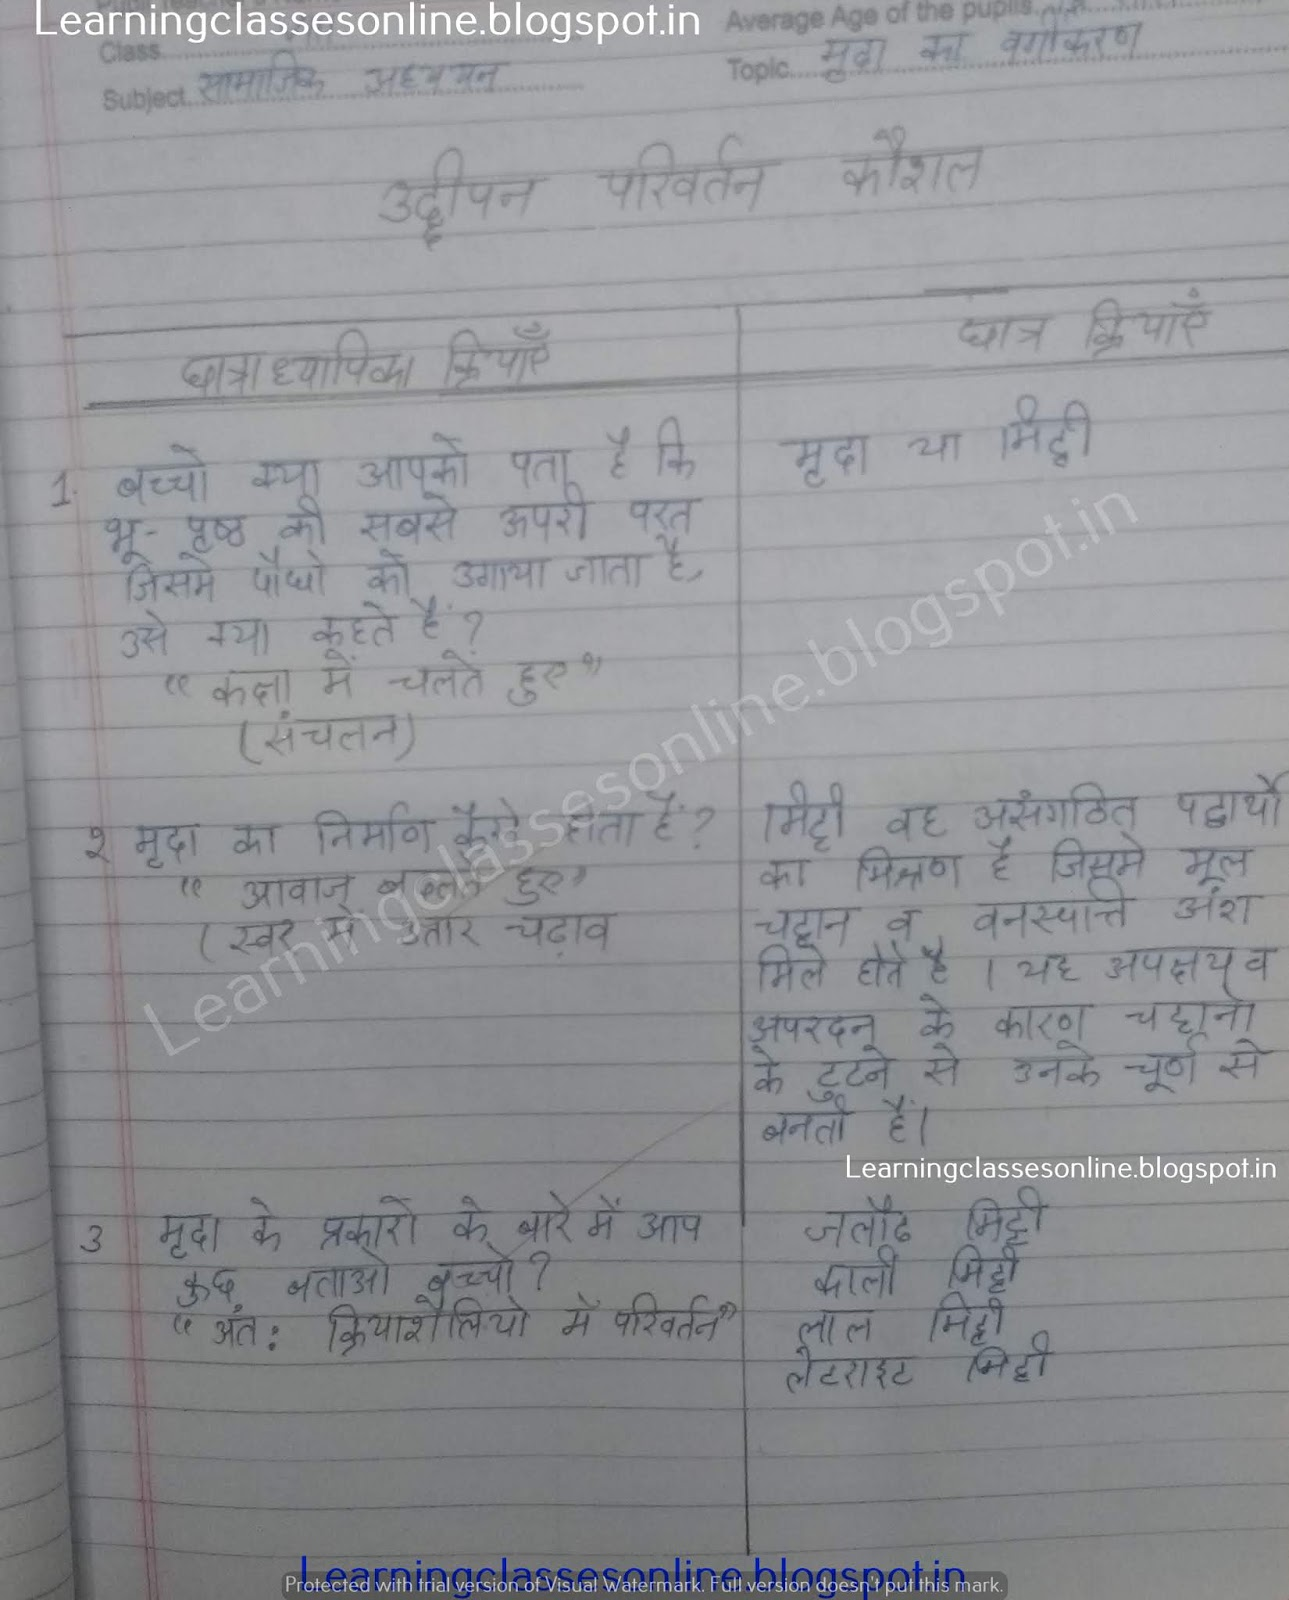 B.Ed BTC DELED social science and social studies lesson plans in hindi